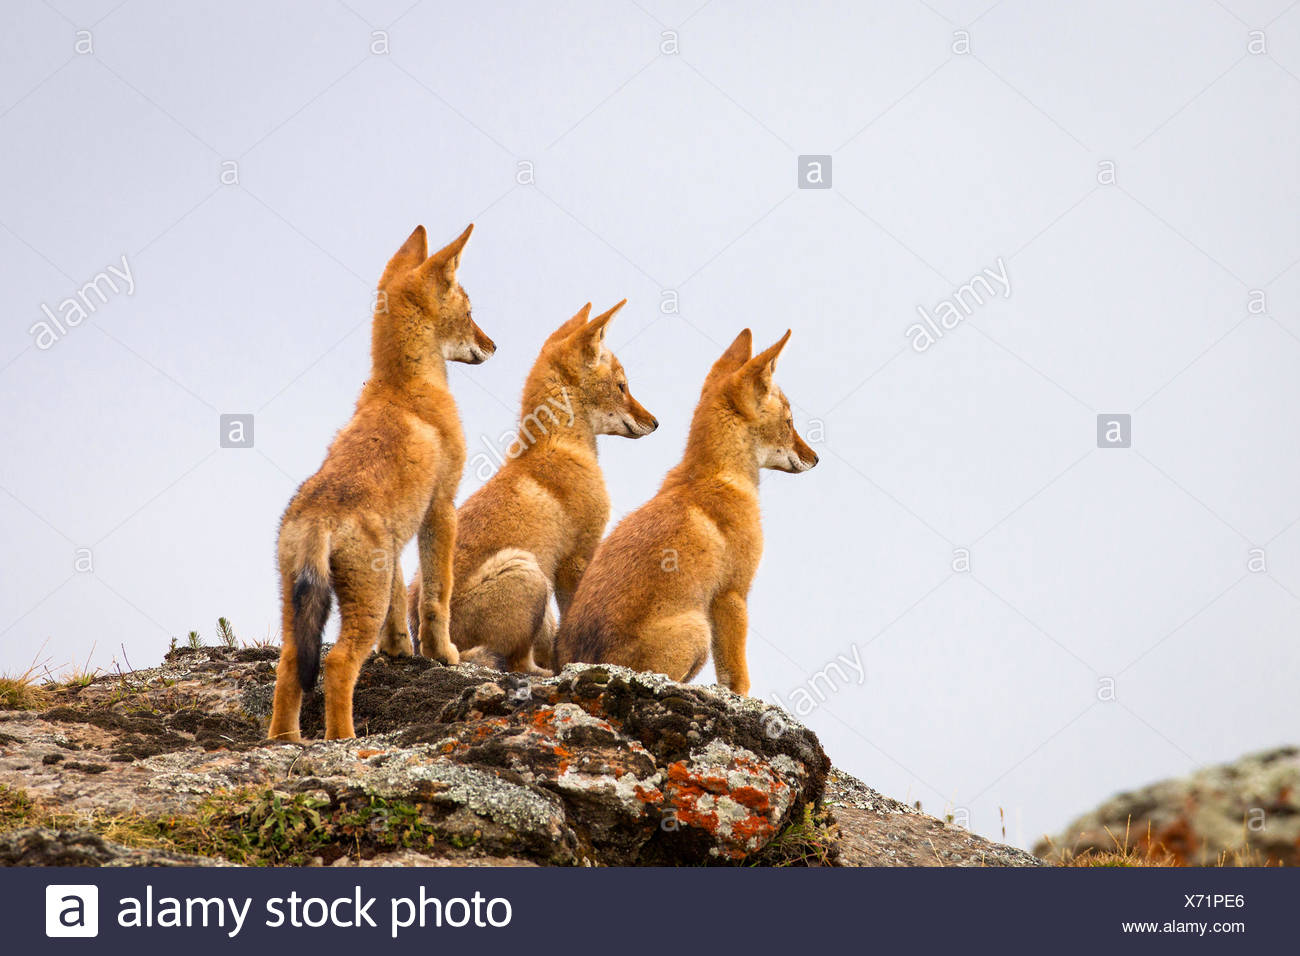 Three Ethiopian wolf (Canis simensis) pups waiting for their parents to return, Ethiopia. - Stock Image